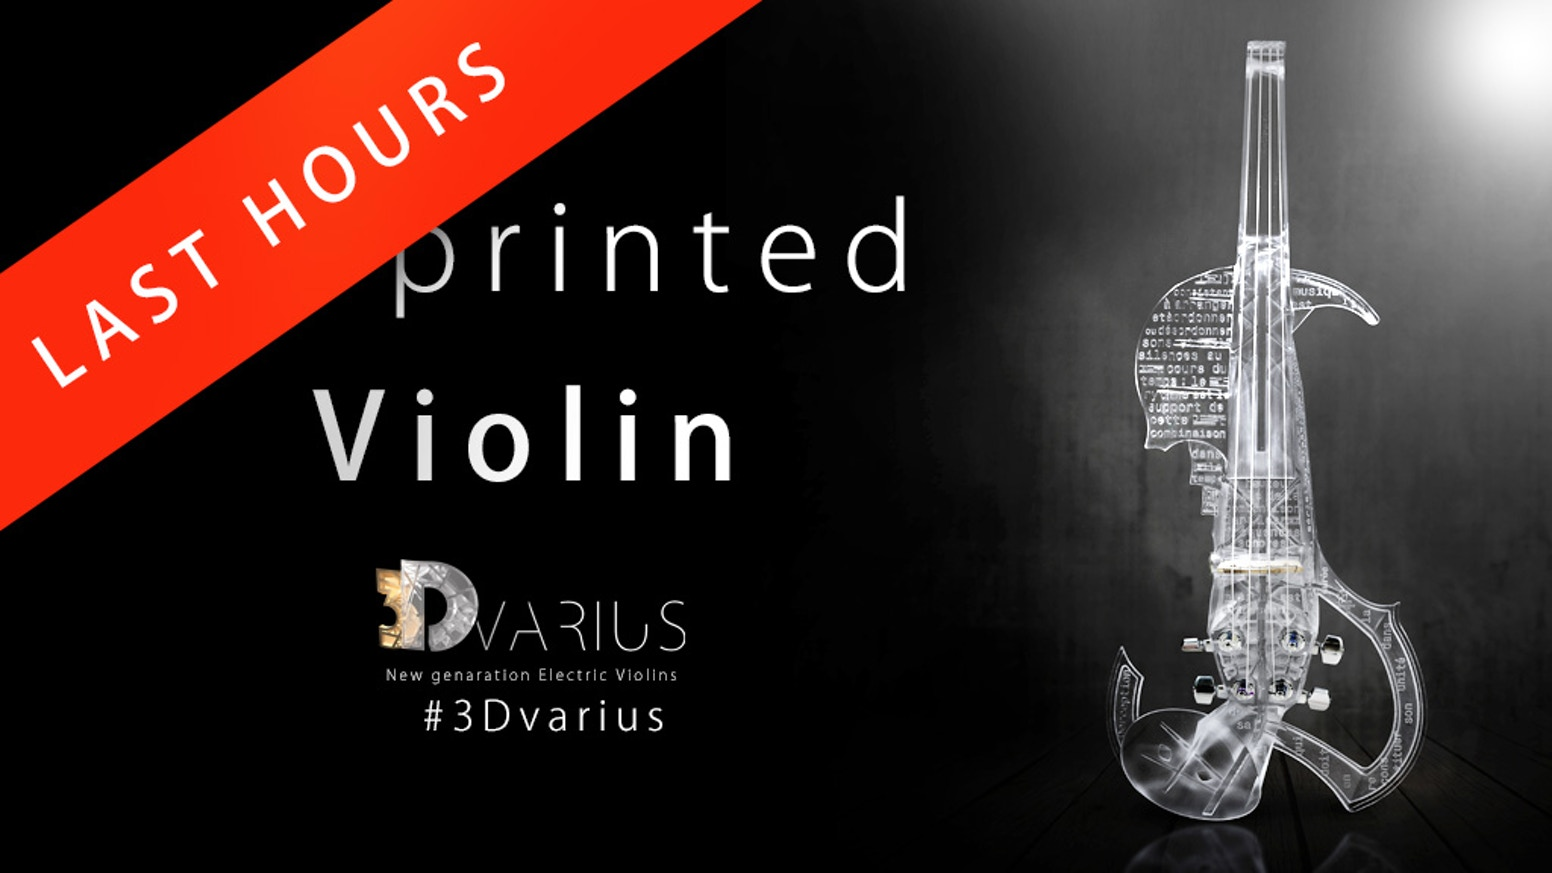 The 3Dvarius is a high-end concert electric violin created by 3D printing technology and based on the model of a Stradivarius violin.